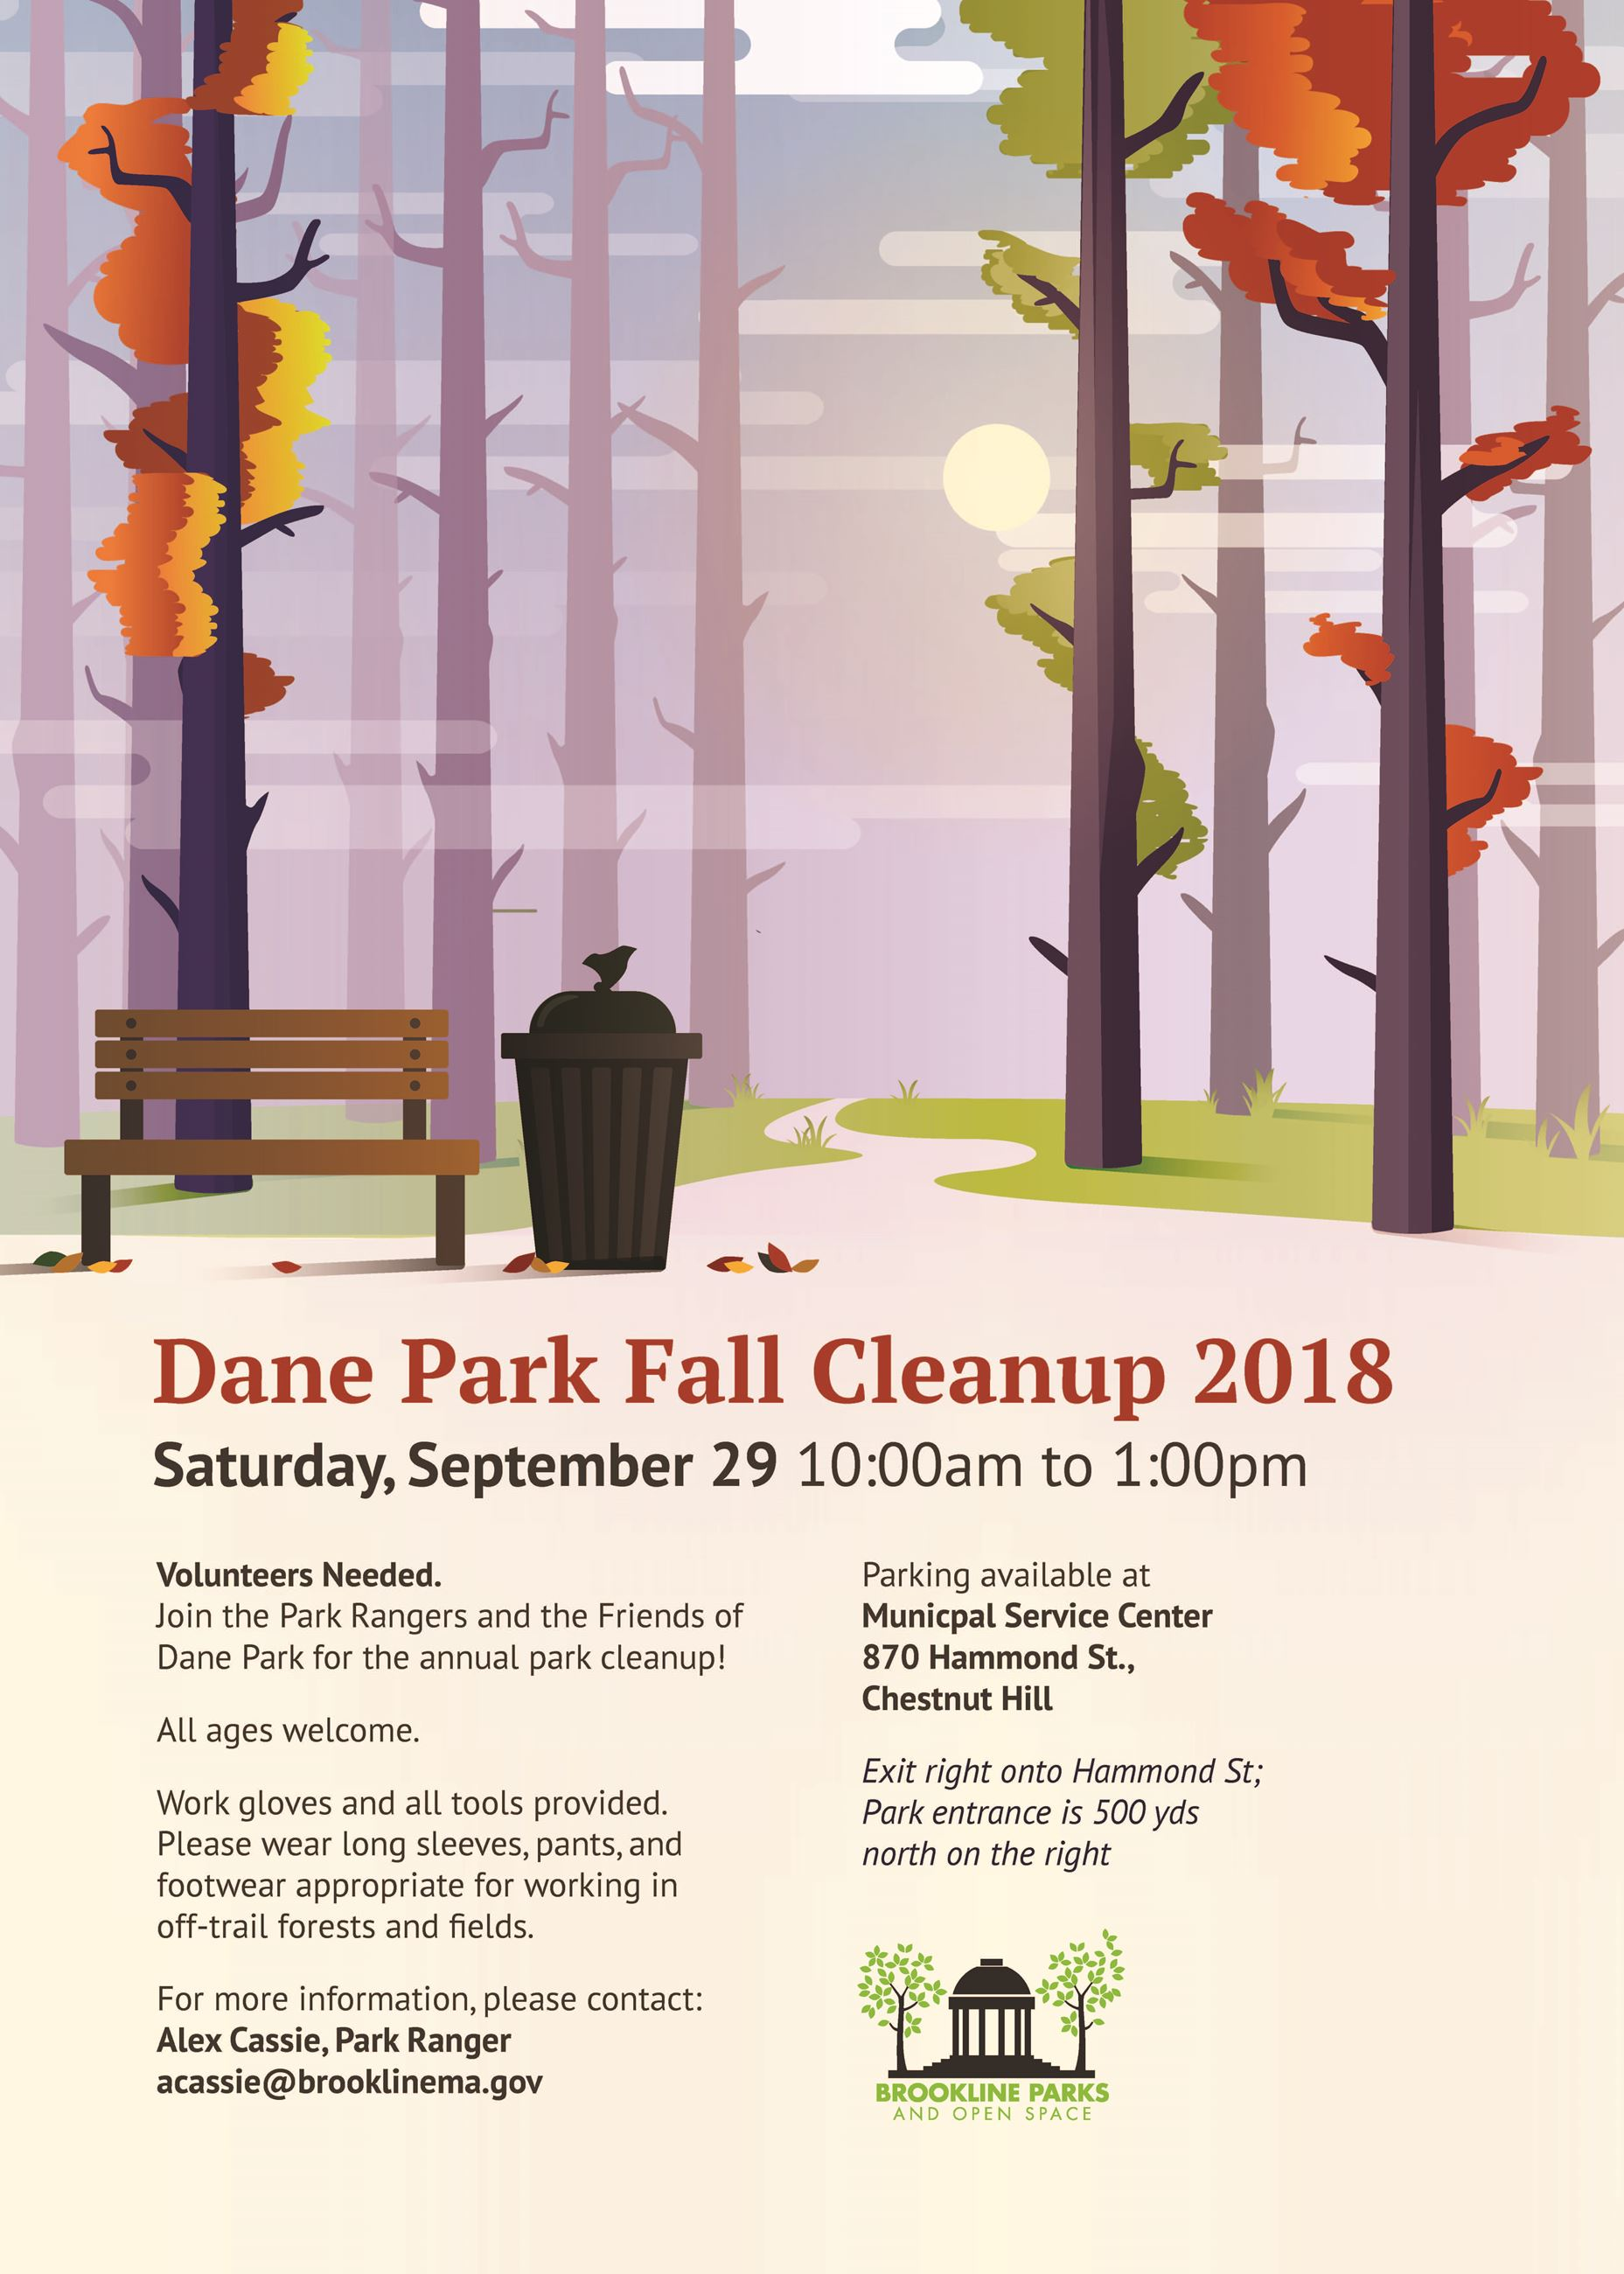 Dane-park-fall-cleanup-2018-25x35